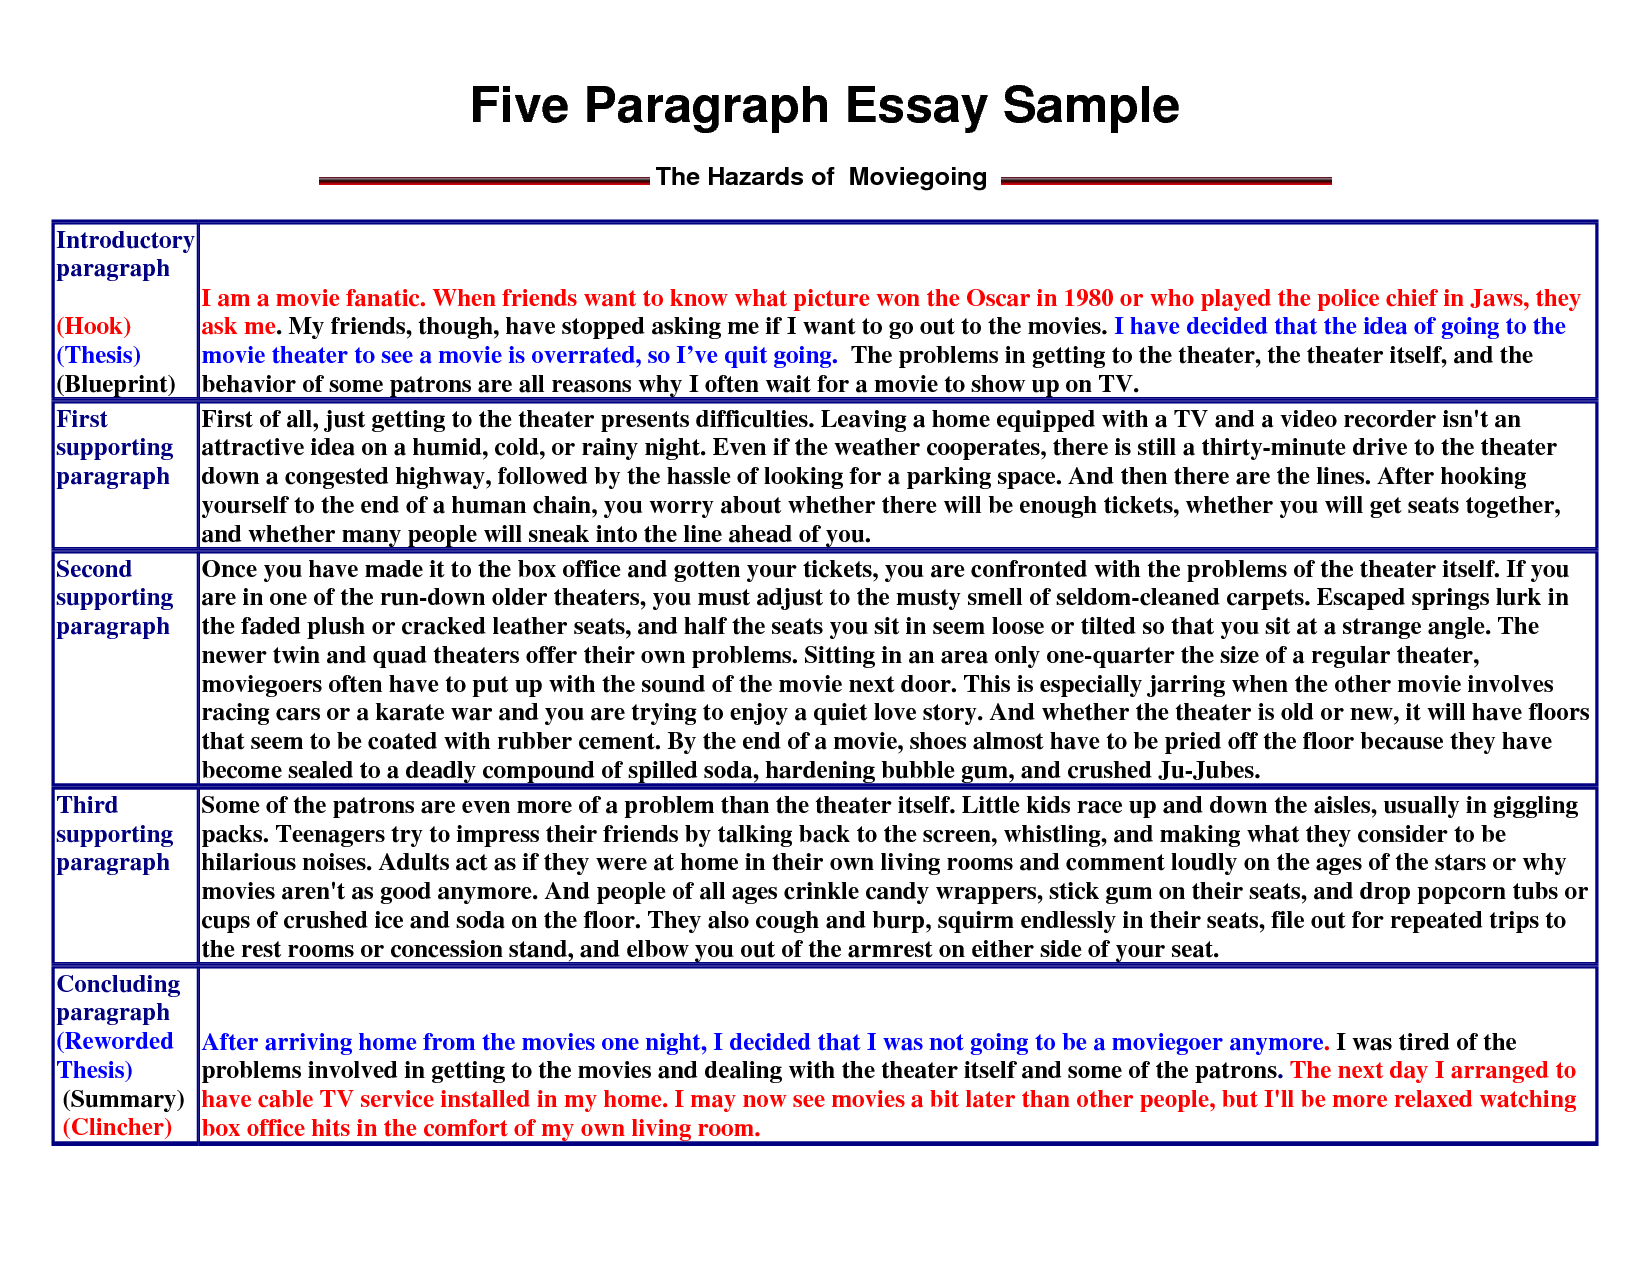 College application essay pay 5 paragraphs